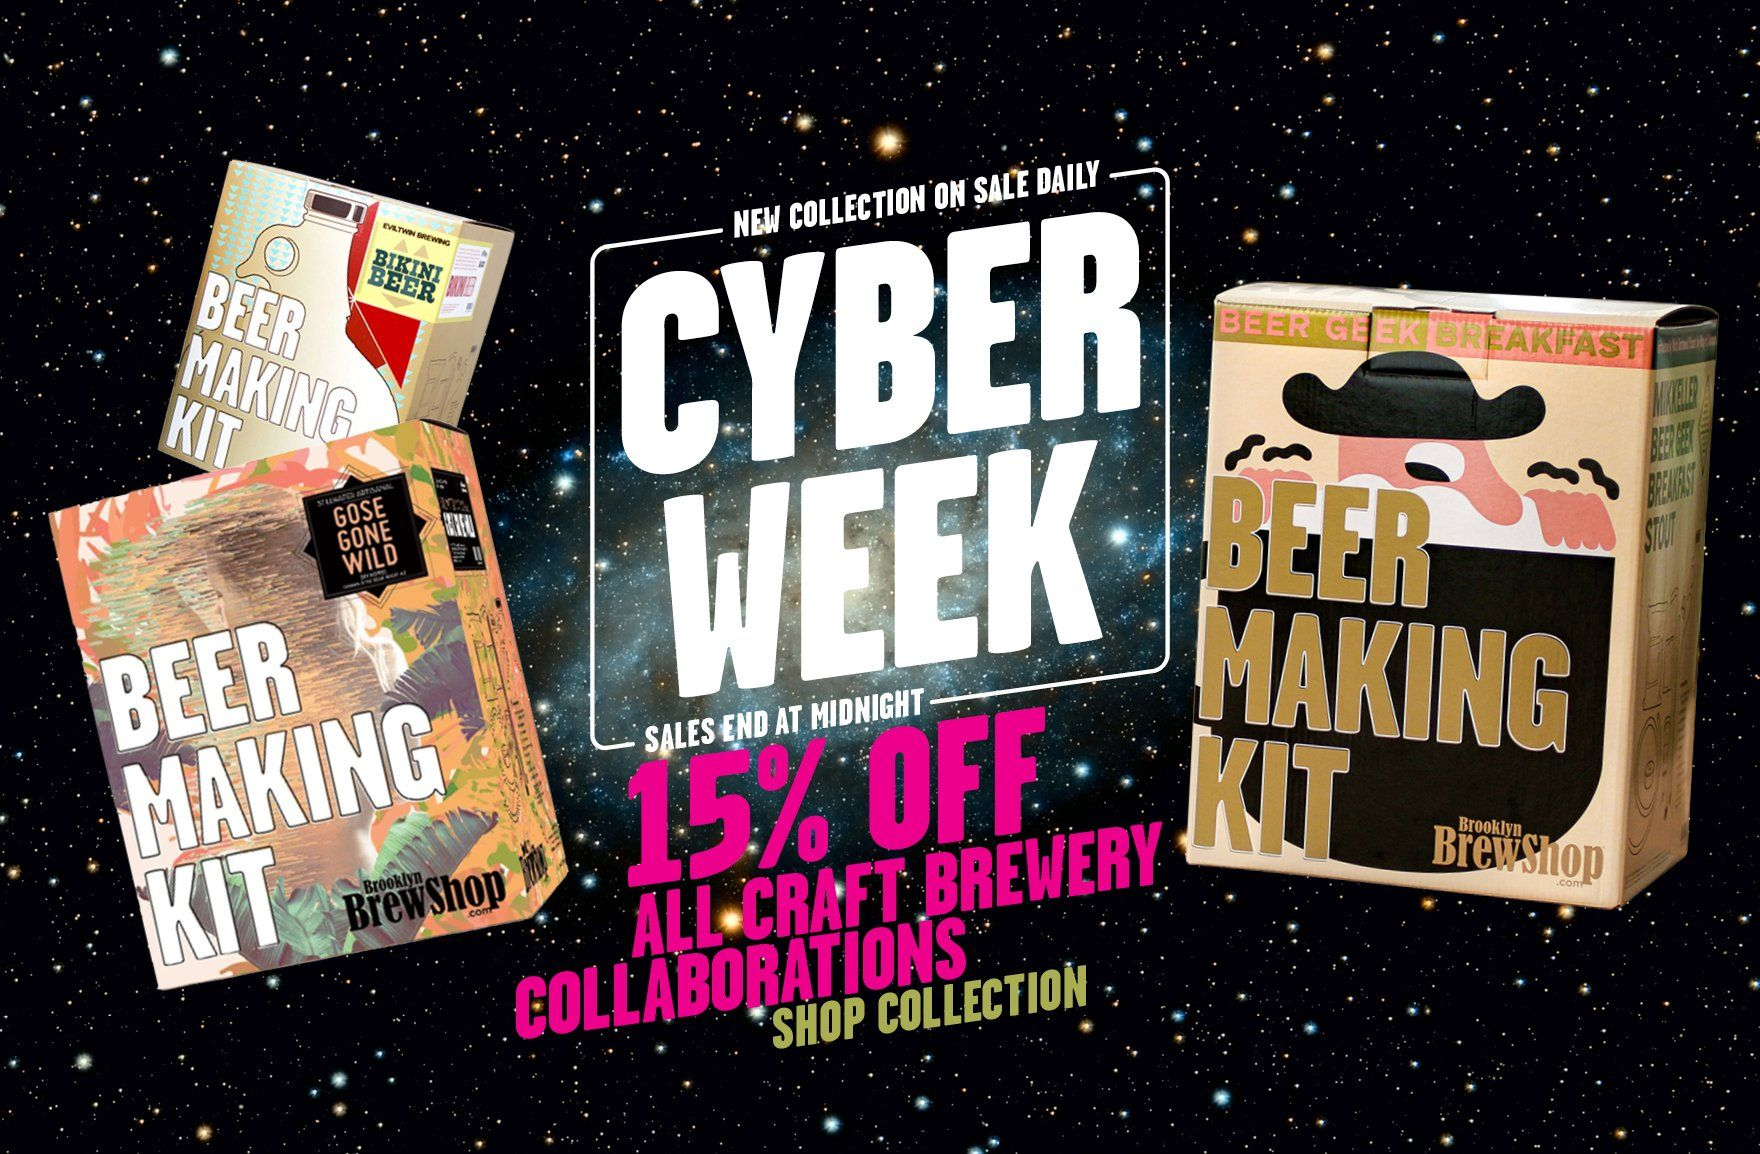 Cyber Week Sale 2019: 20% Off All Craft Brewery Collaborations